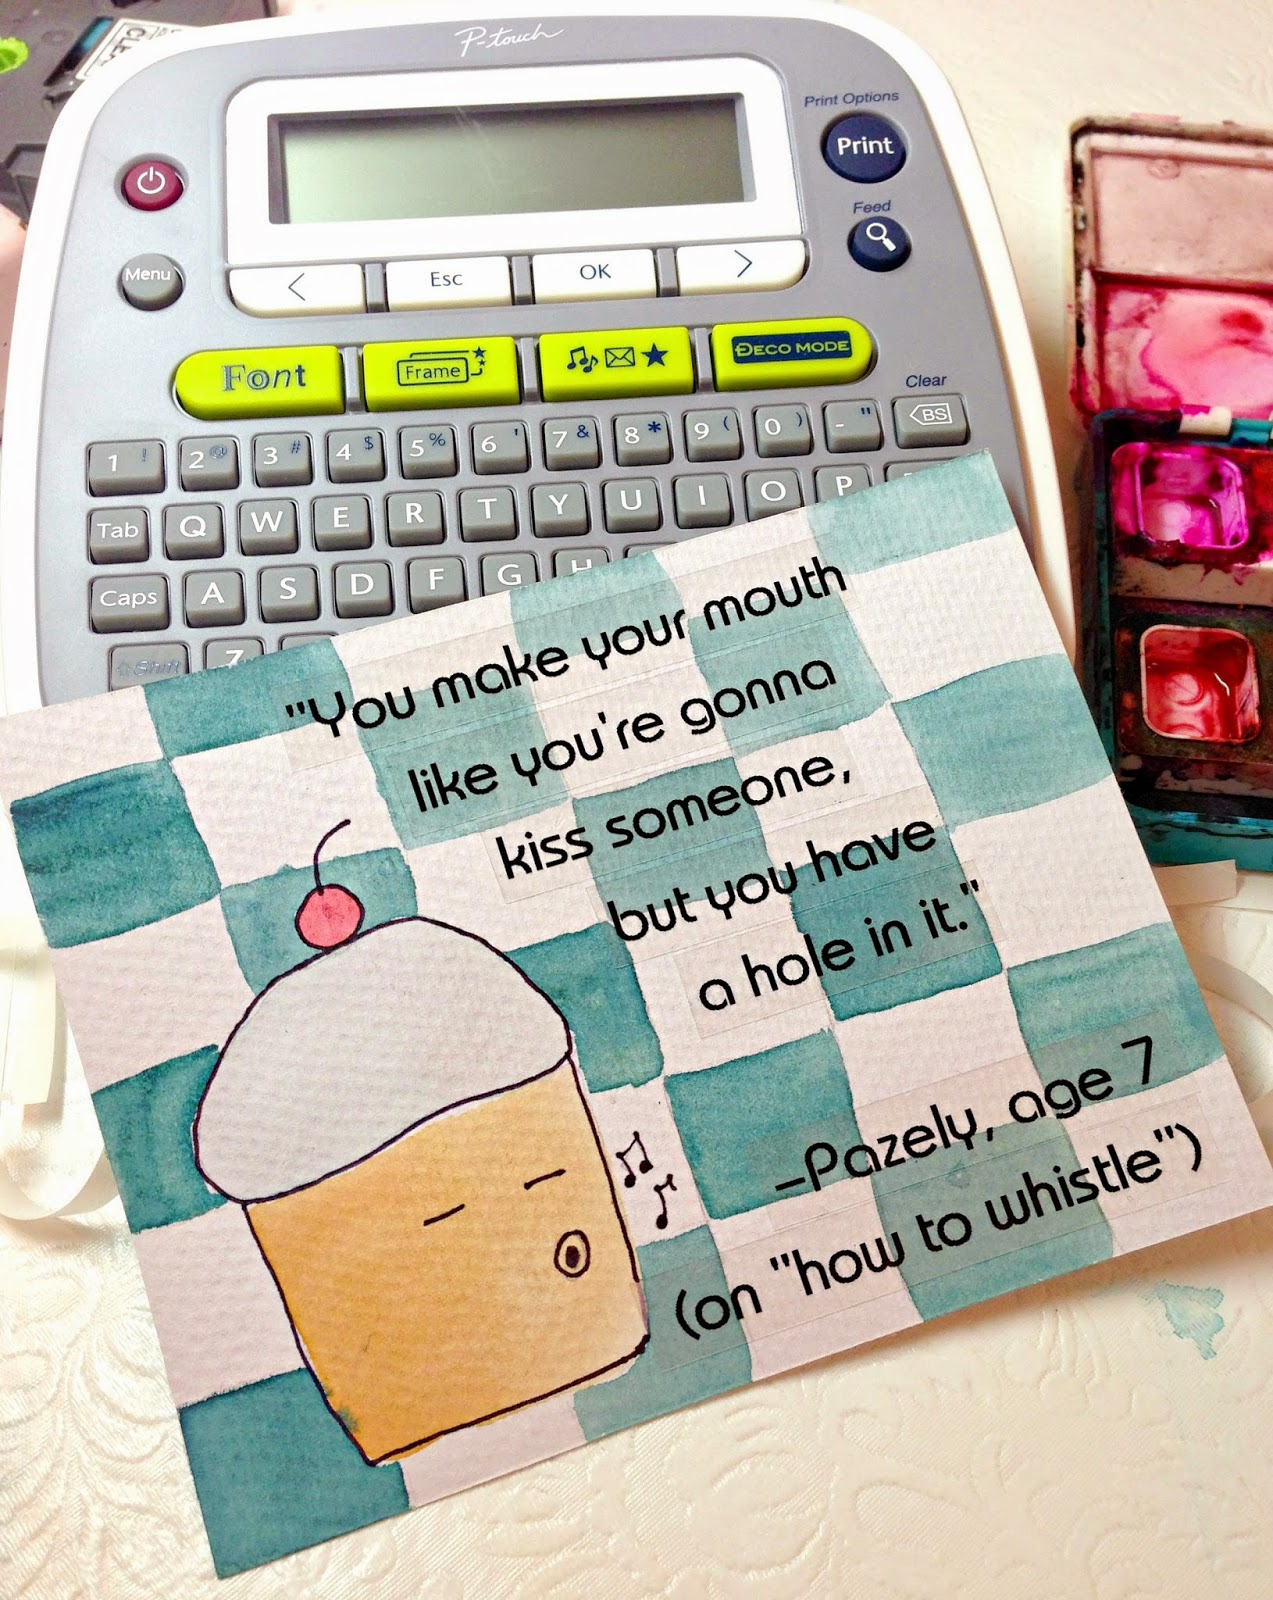 WhiMSy love: DIY: Label Quote Art with Brother P-Touch Label Maker